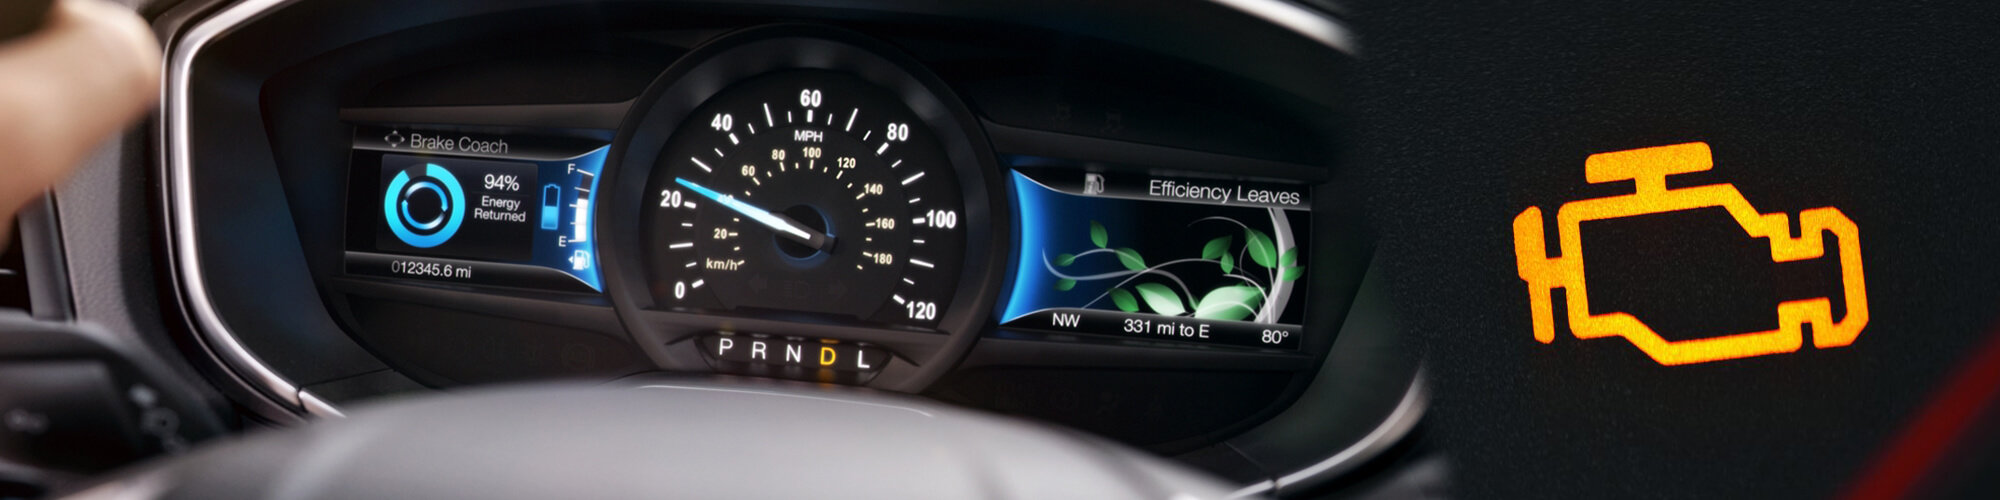 What Does The Ford F-150 Check Engine Light Mean